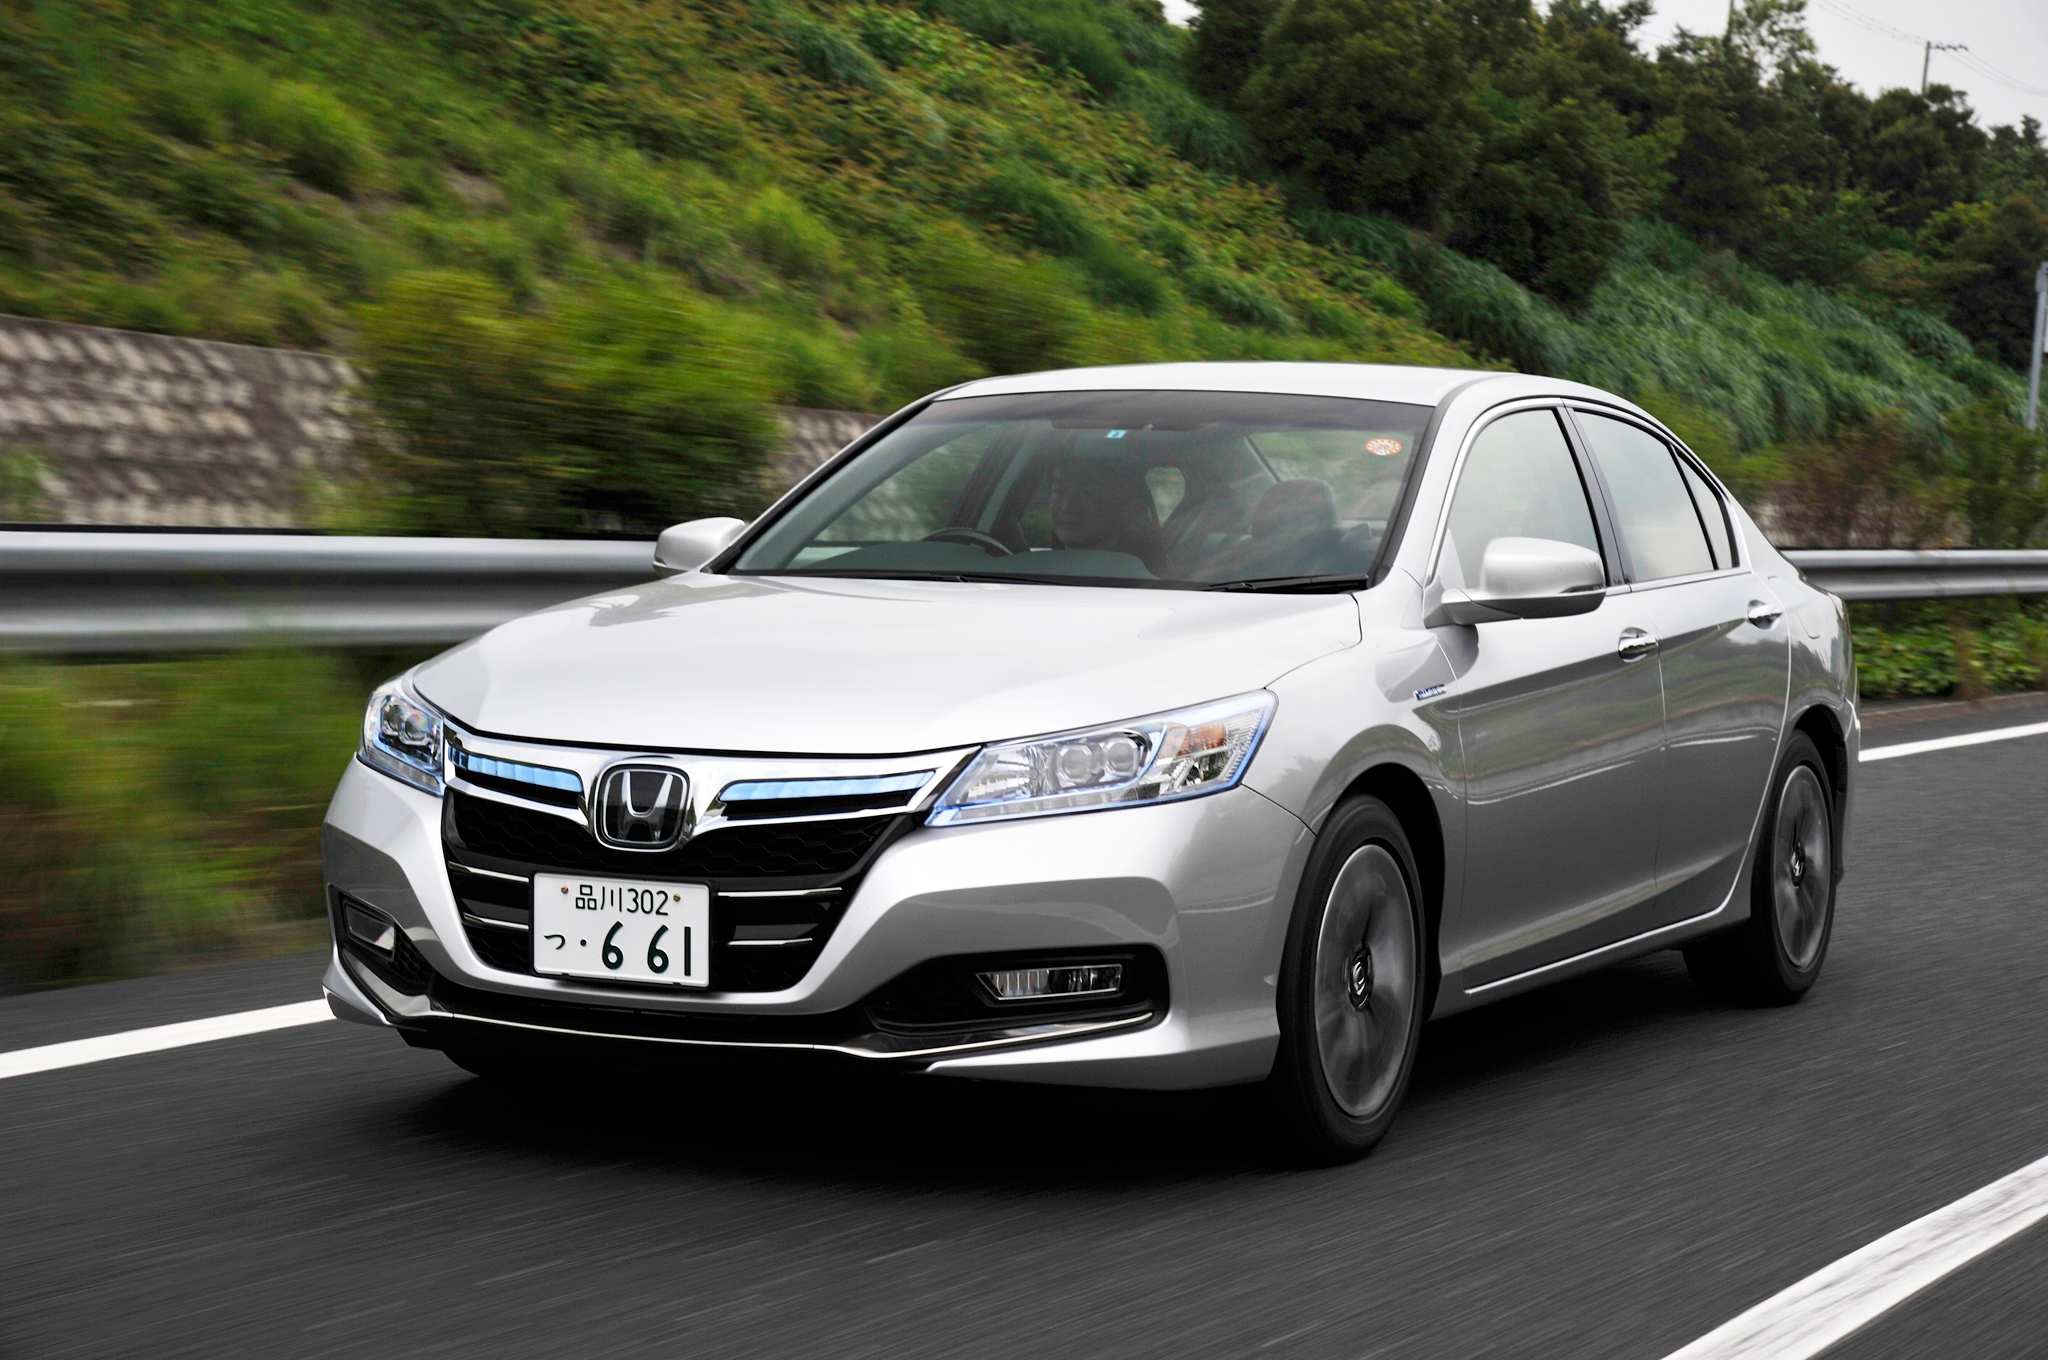 https://enthusiastnetwork.s3.amazonaws.com/uploads/sites/5/2013/08/2014-Honda-Accord-Hybrid-front-three-quarters-in-motion.jpg?impolicy=entryimage